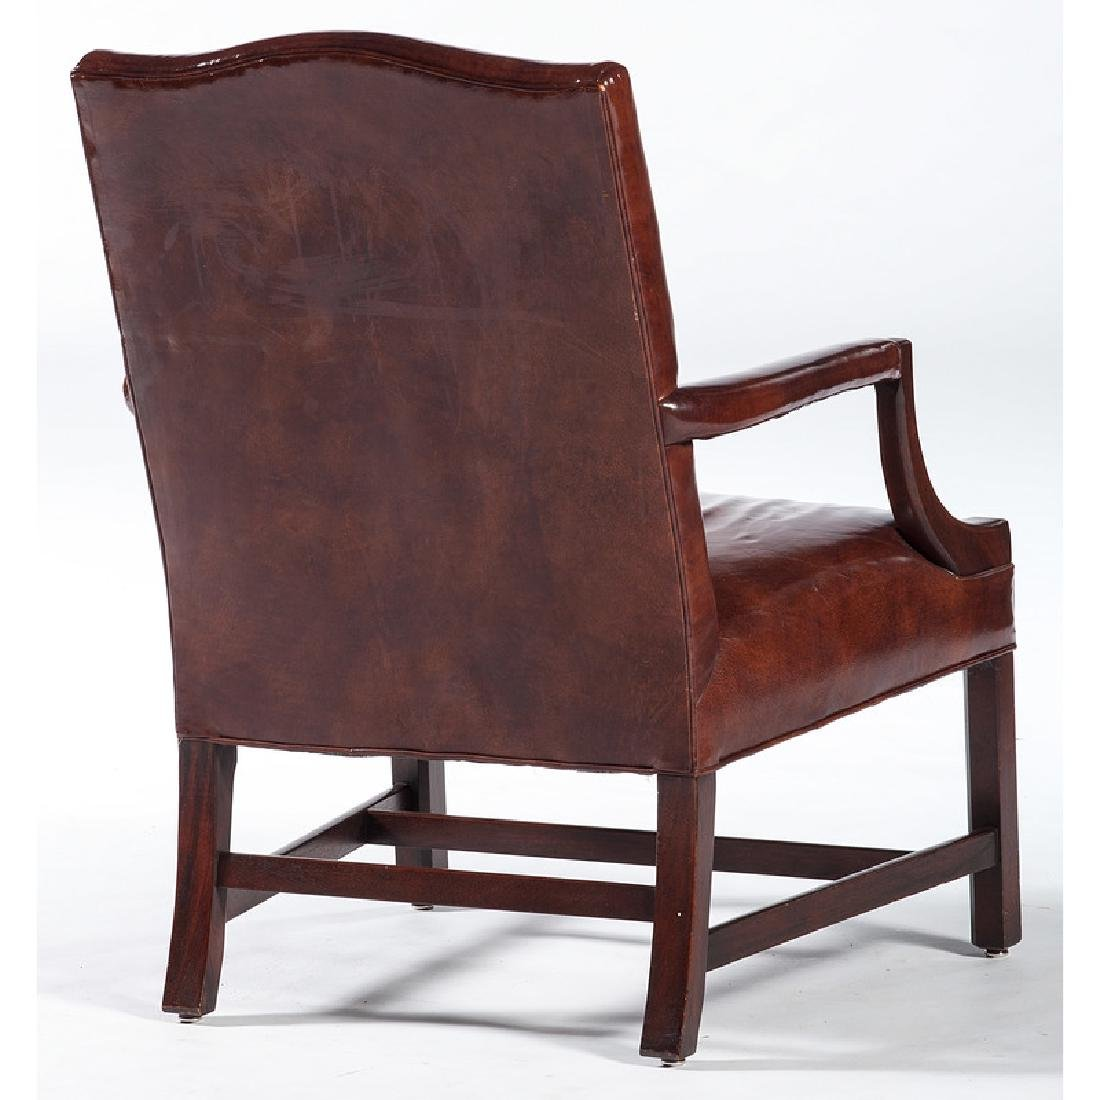 Chippendale-style Leather Armchair - 2